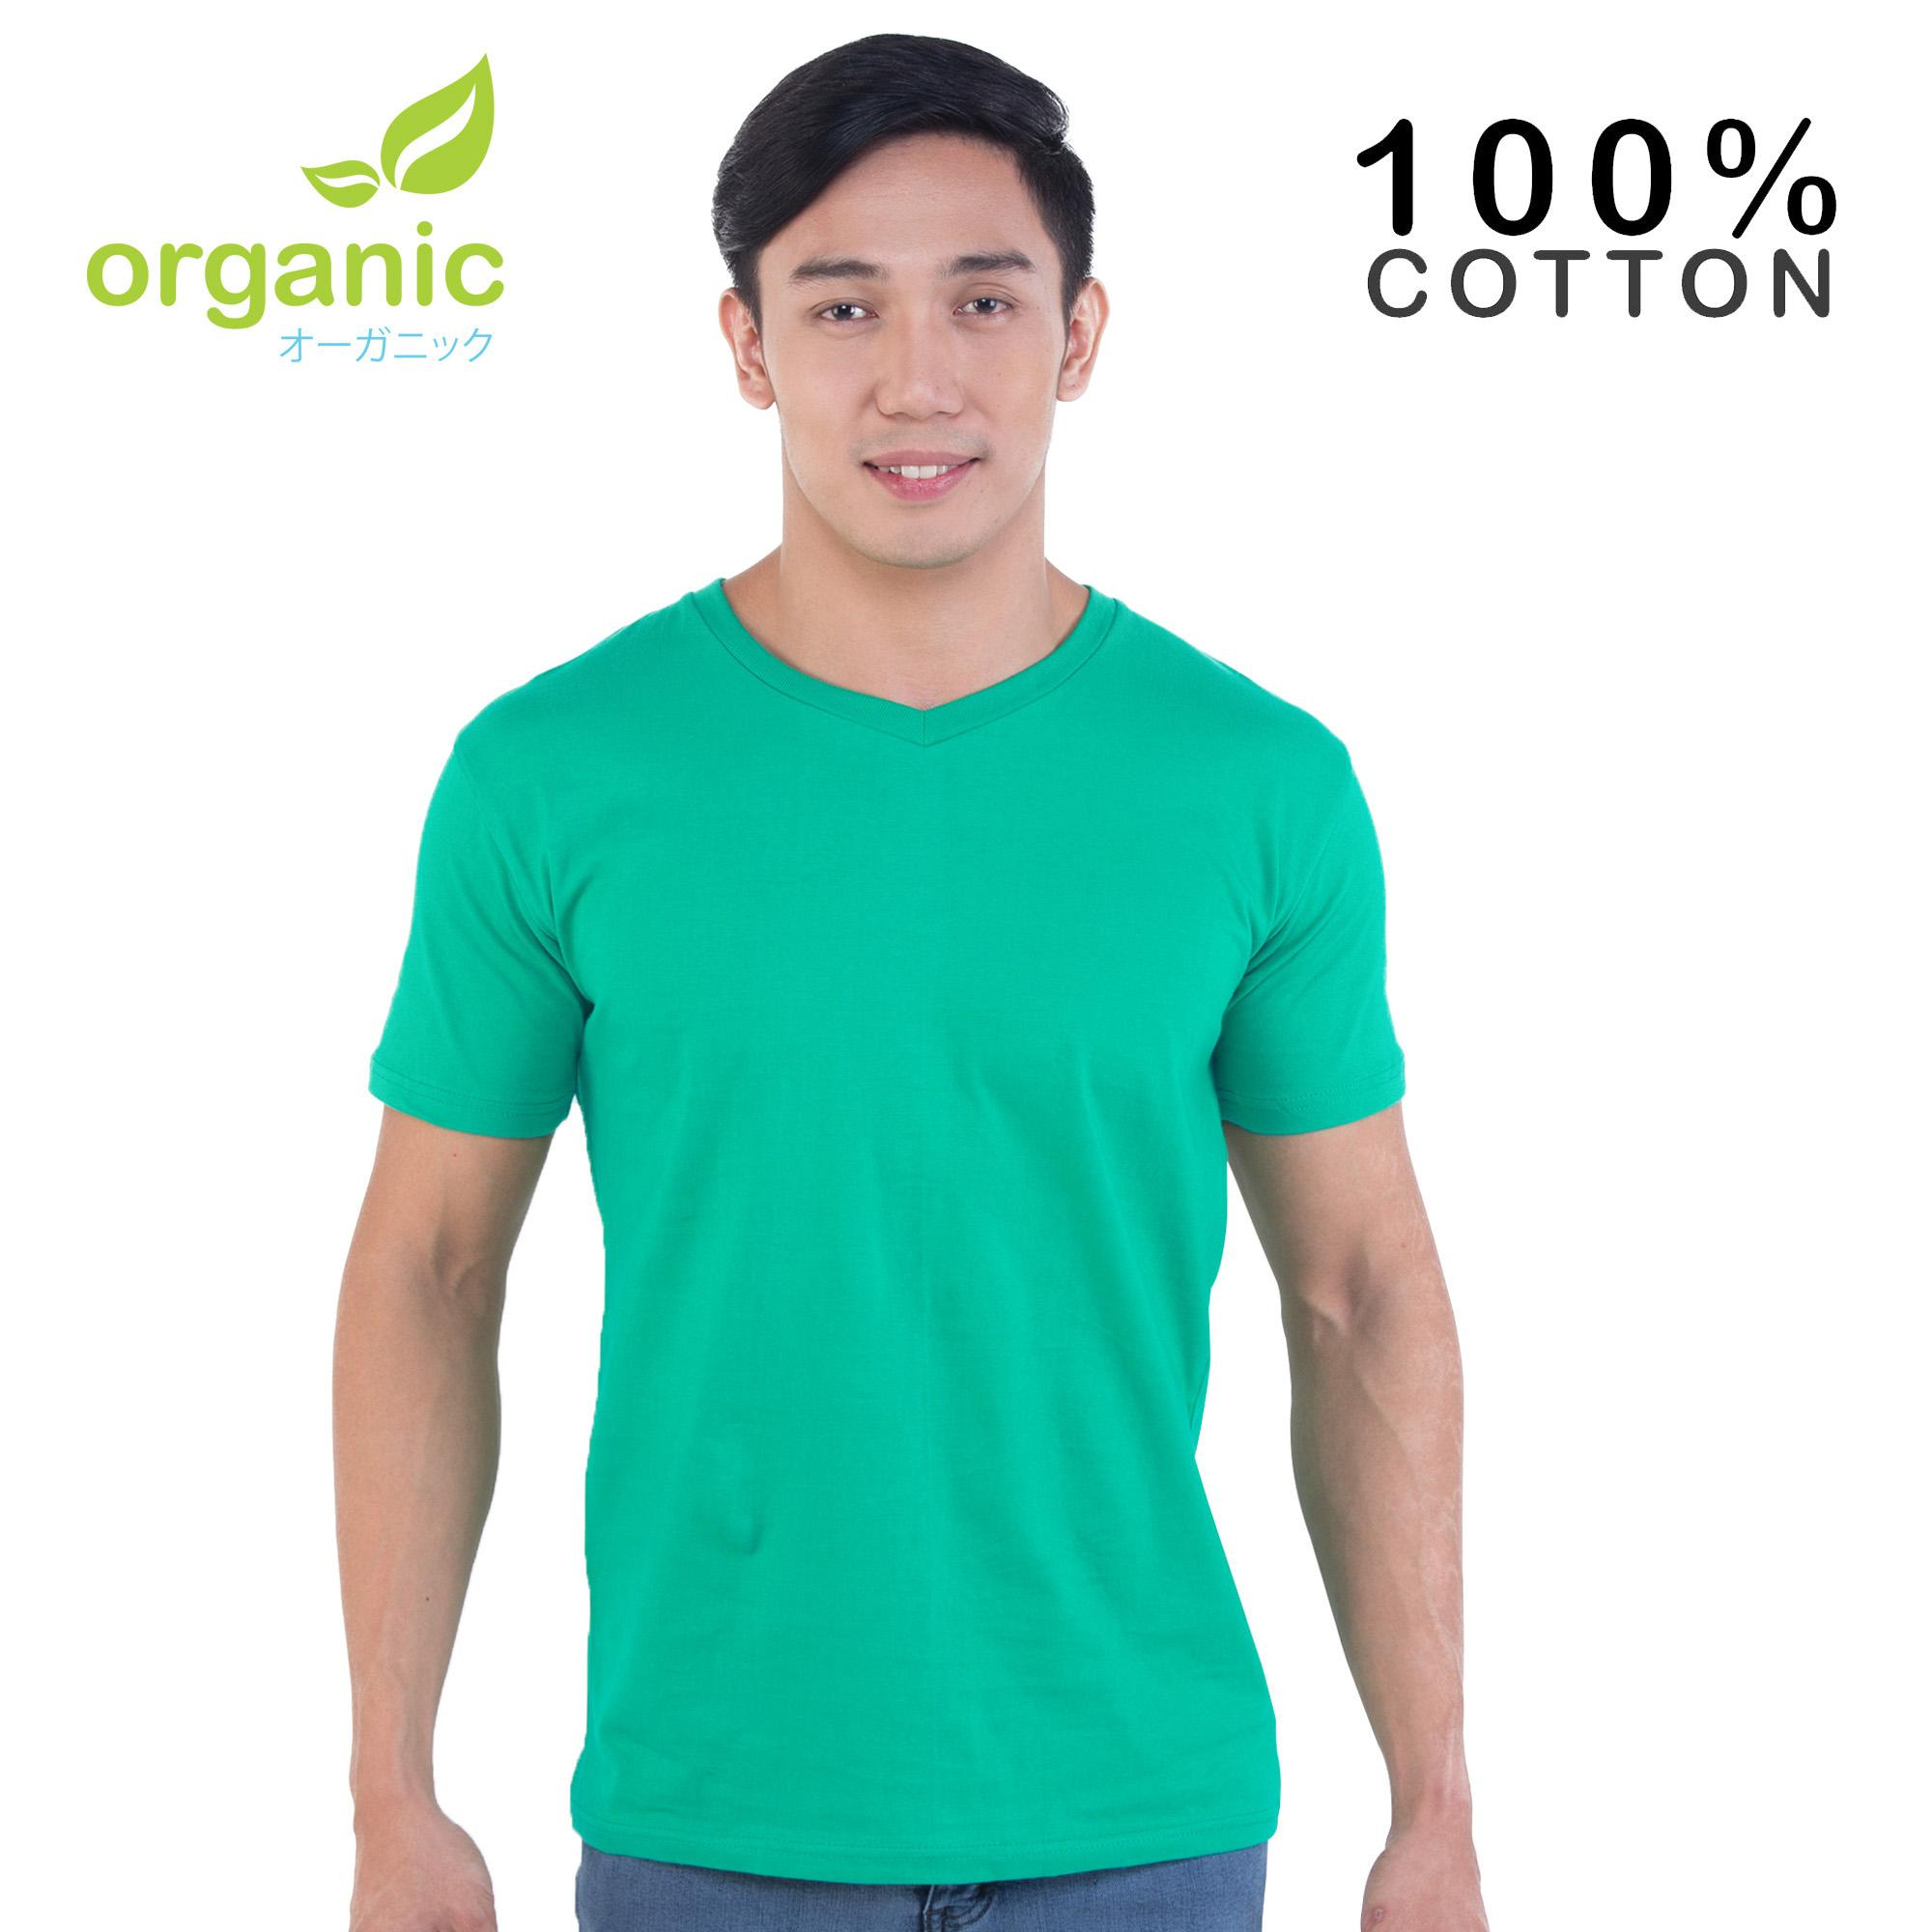 c492210a1010 Organic Mens 100% Cotton Vneck Tees t shirt tshirt shirts tshirts v neck tops  top